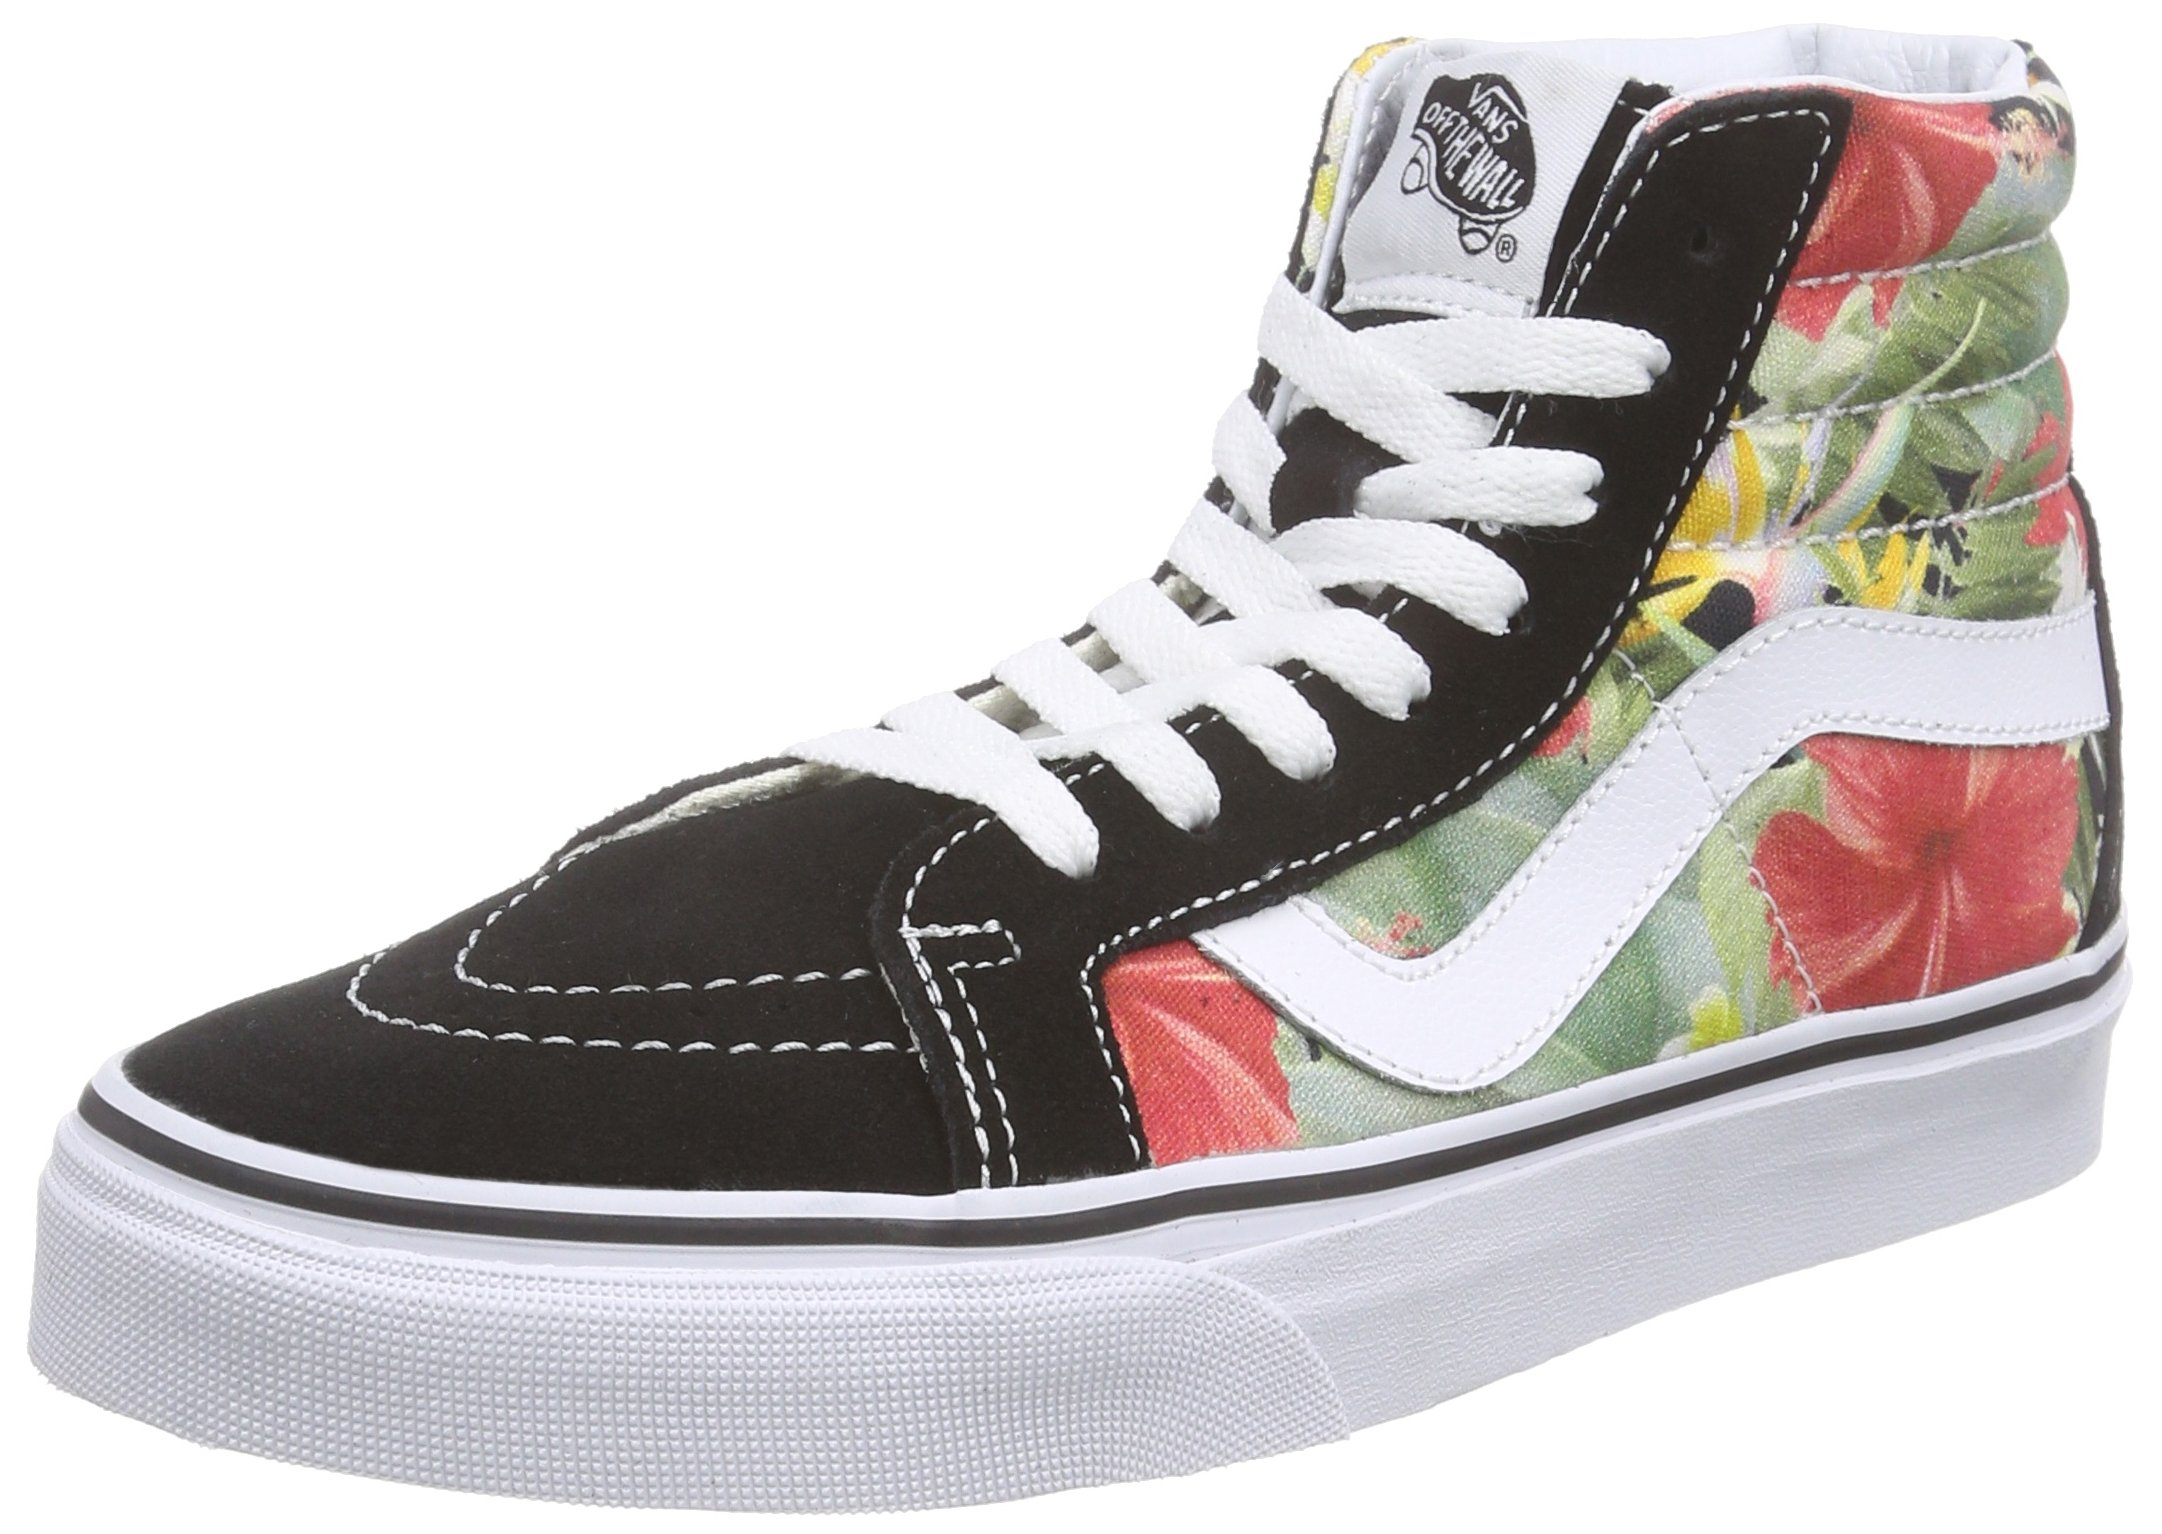 bdb95fe824 Galleon - Vans Mens Digi Aloha SK8-Hi Reissue Black True White Sneaker -  10.5